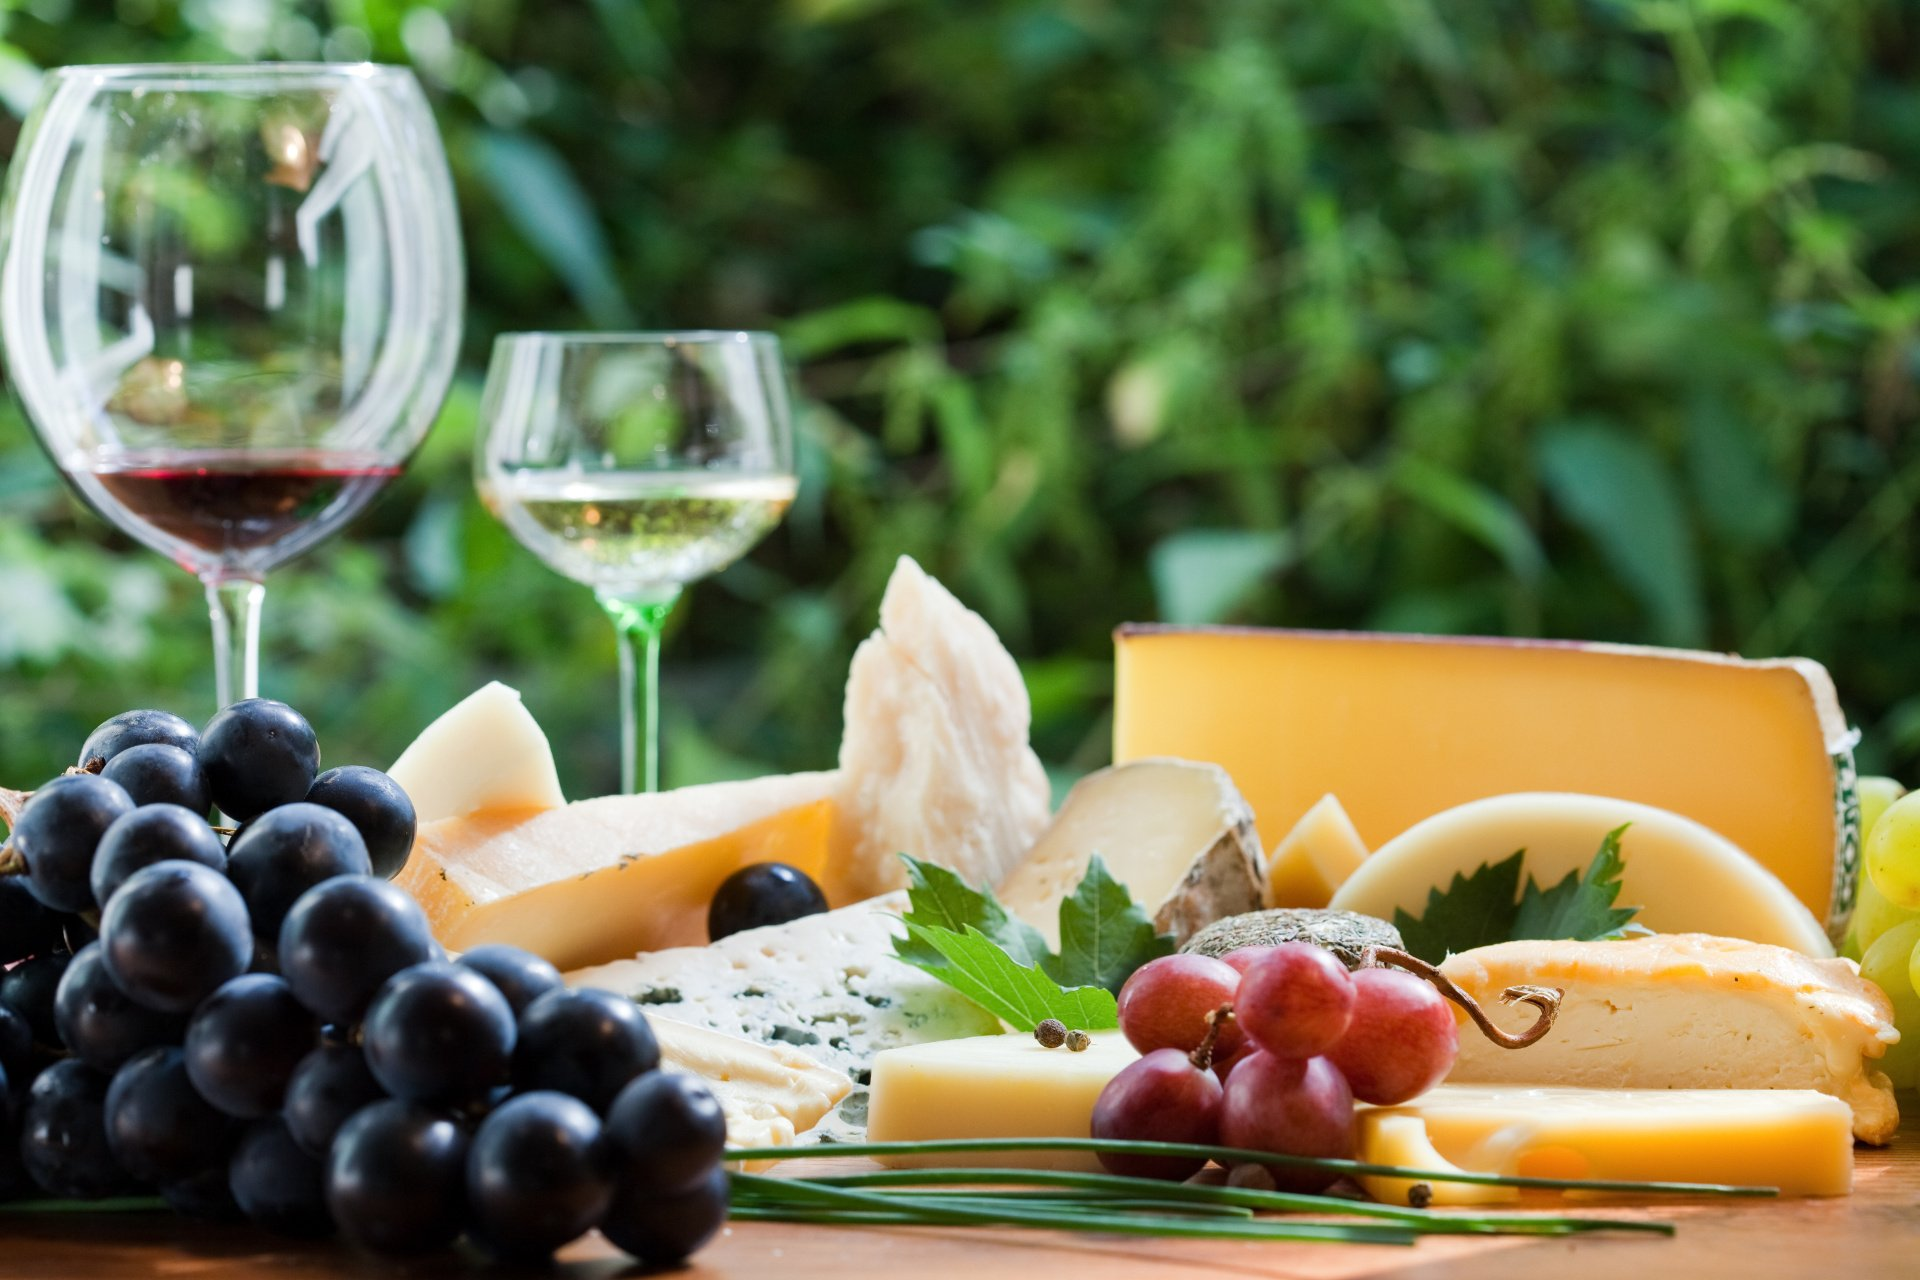 An appetizing selection of cheese and wine